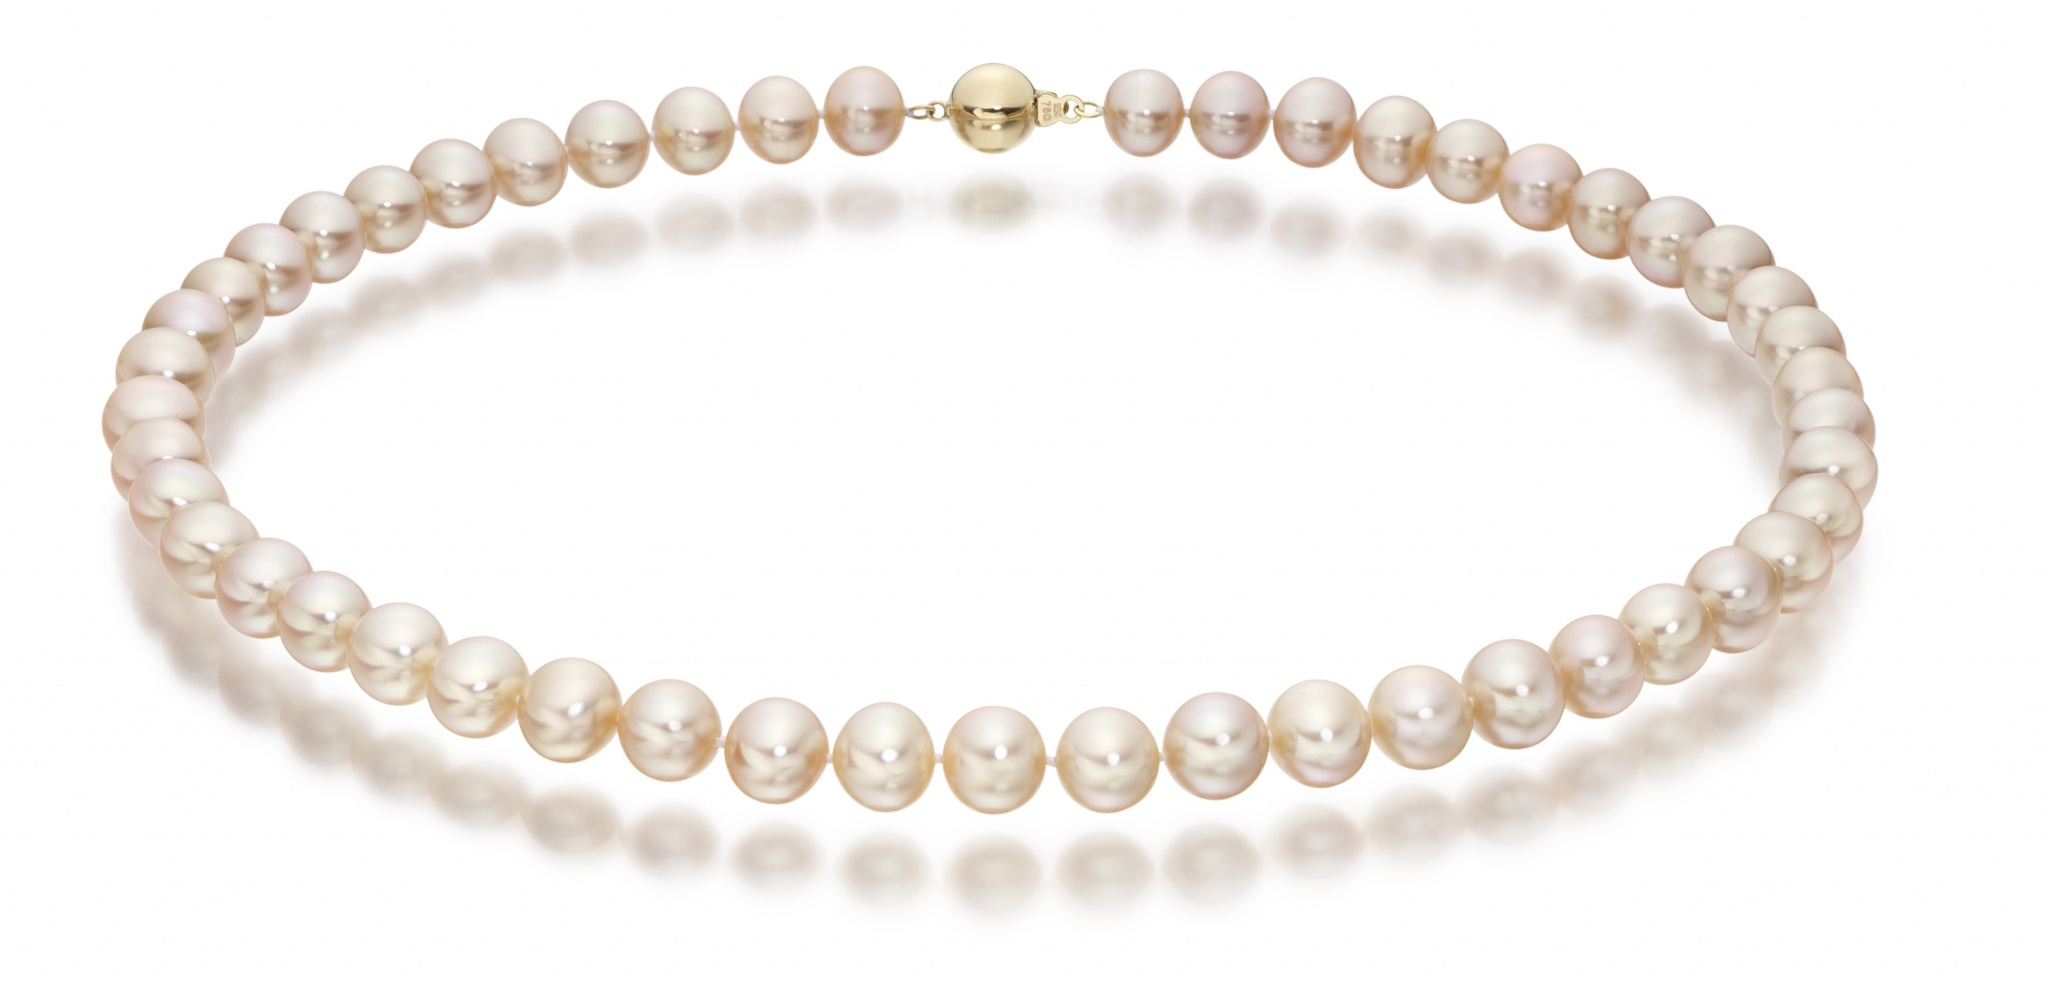 Pink Freshwater Pearl Necklace with 18ct Gold Clasp-FNVAR01050458-1